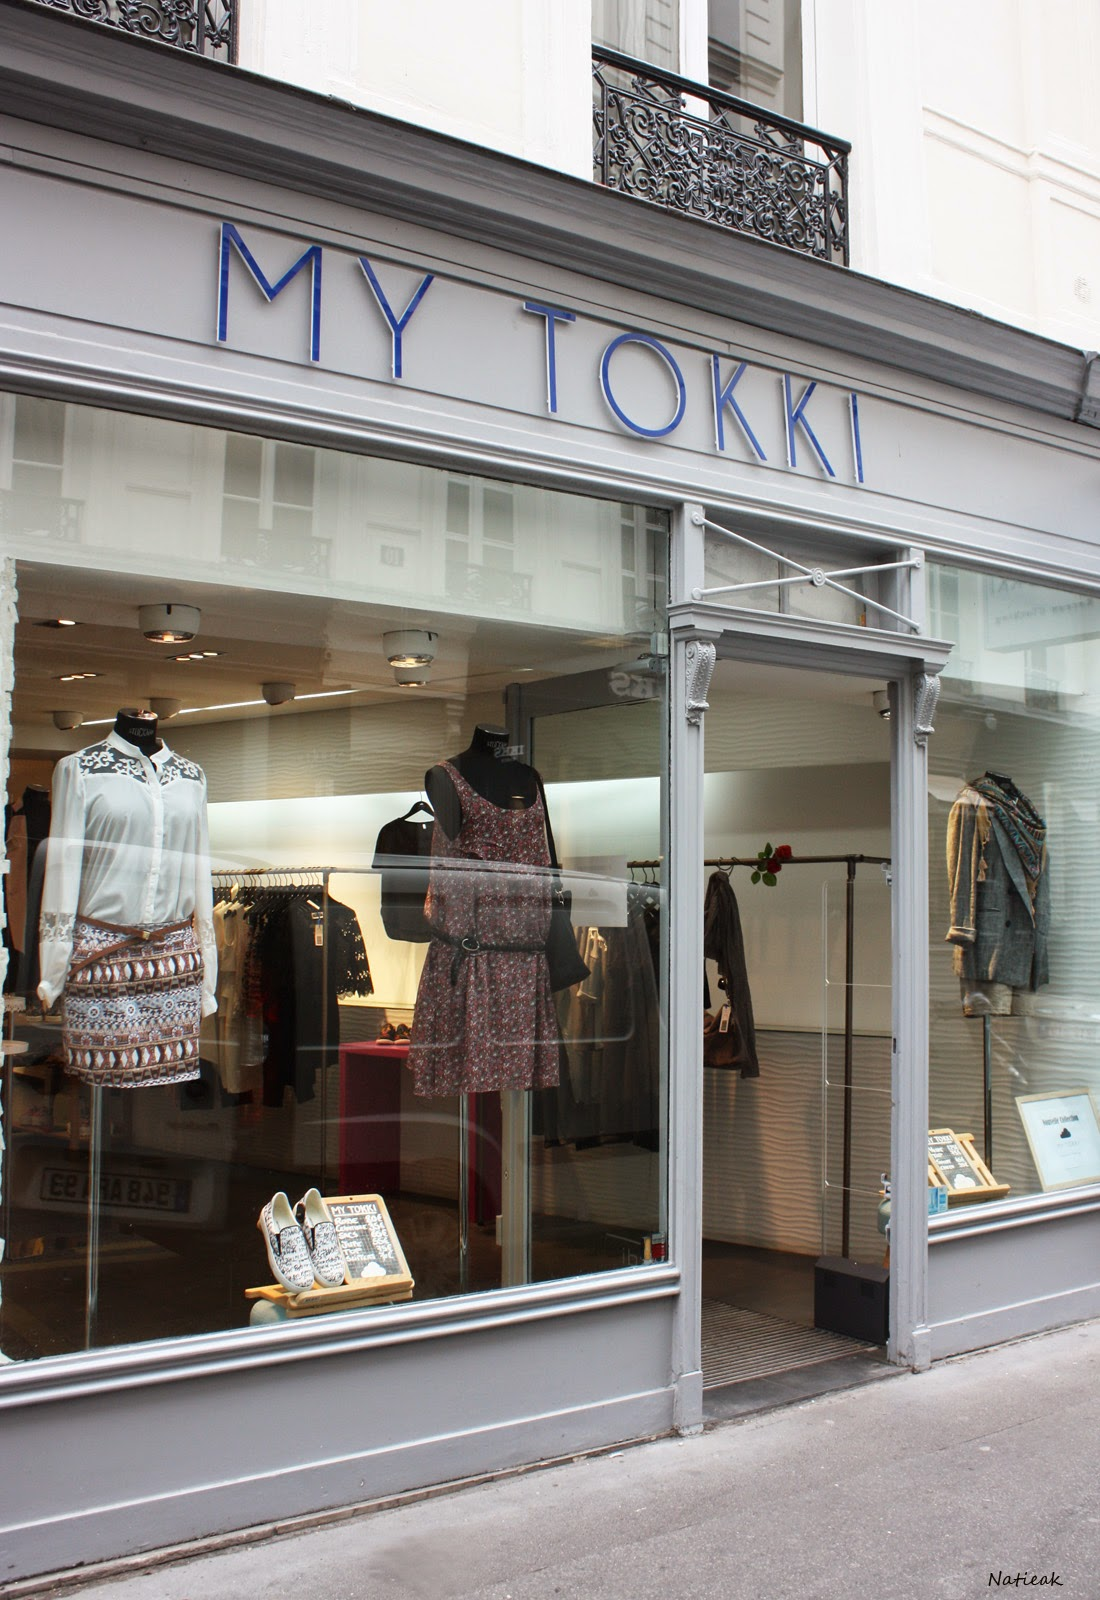 My Tokki, la mode coréenne à Paris